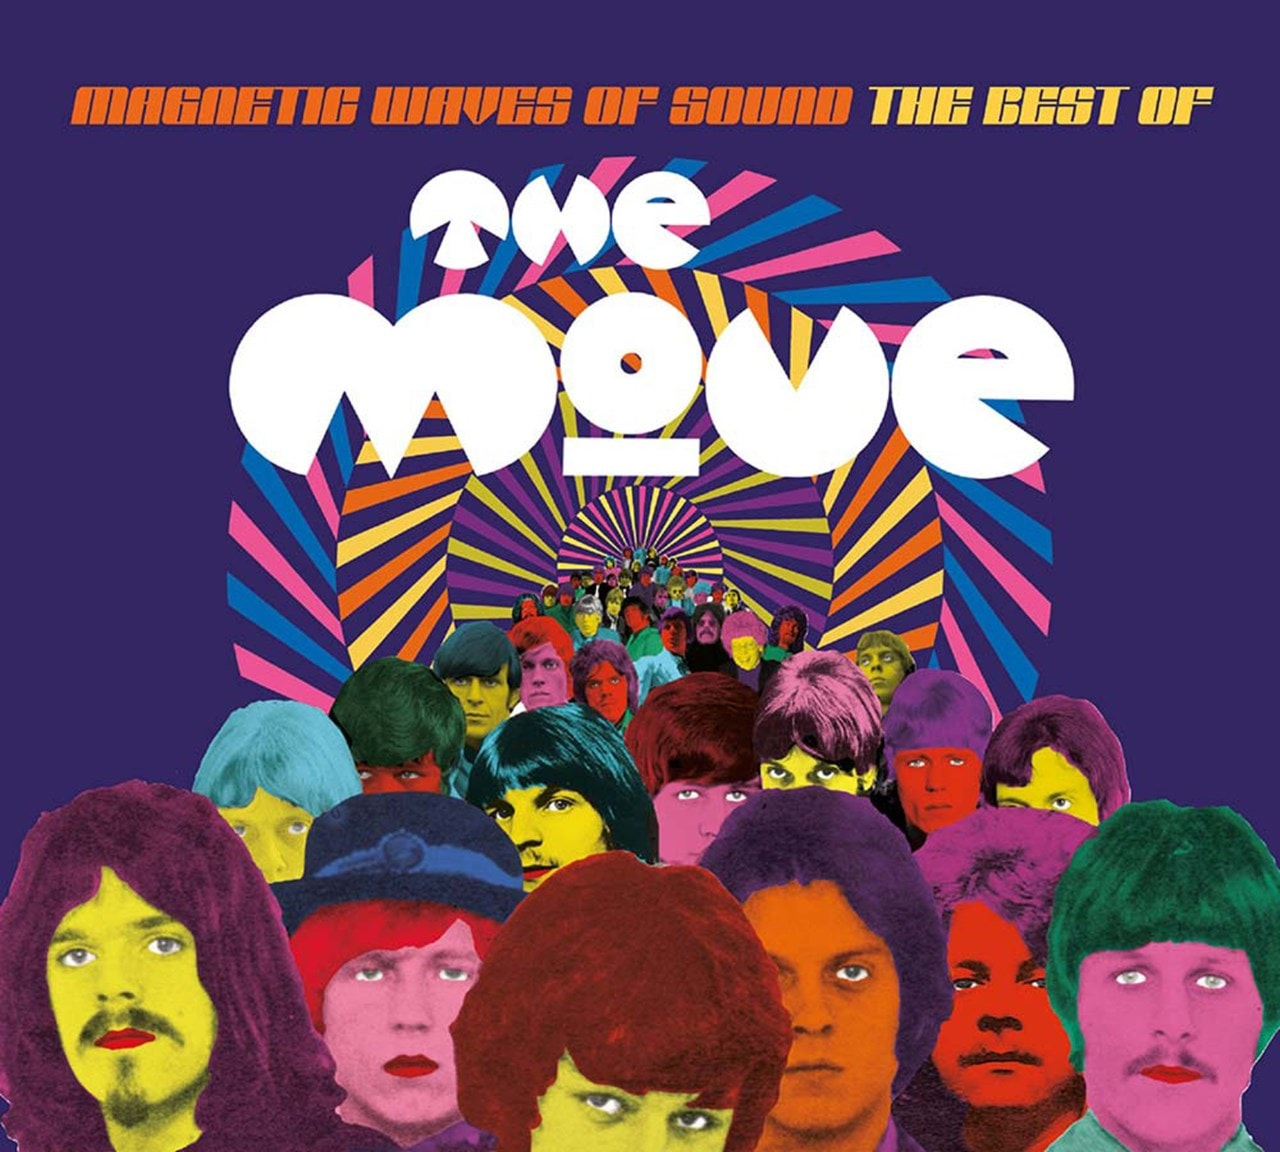 Magnetic Waves of Sound: The Best of the Move - 1